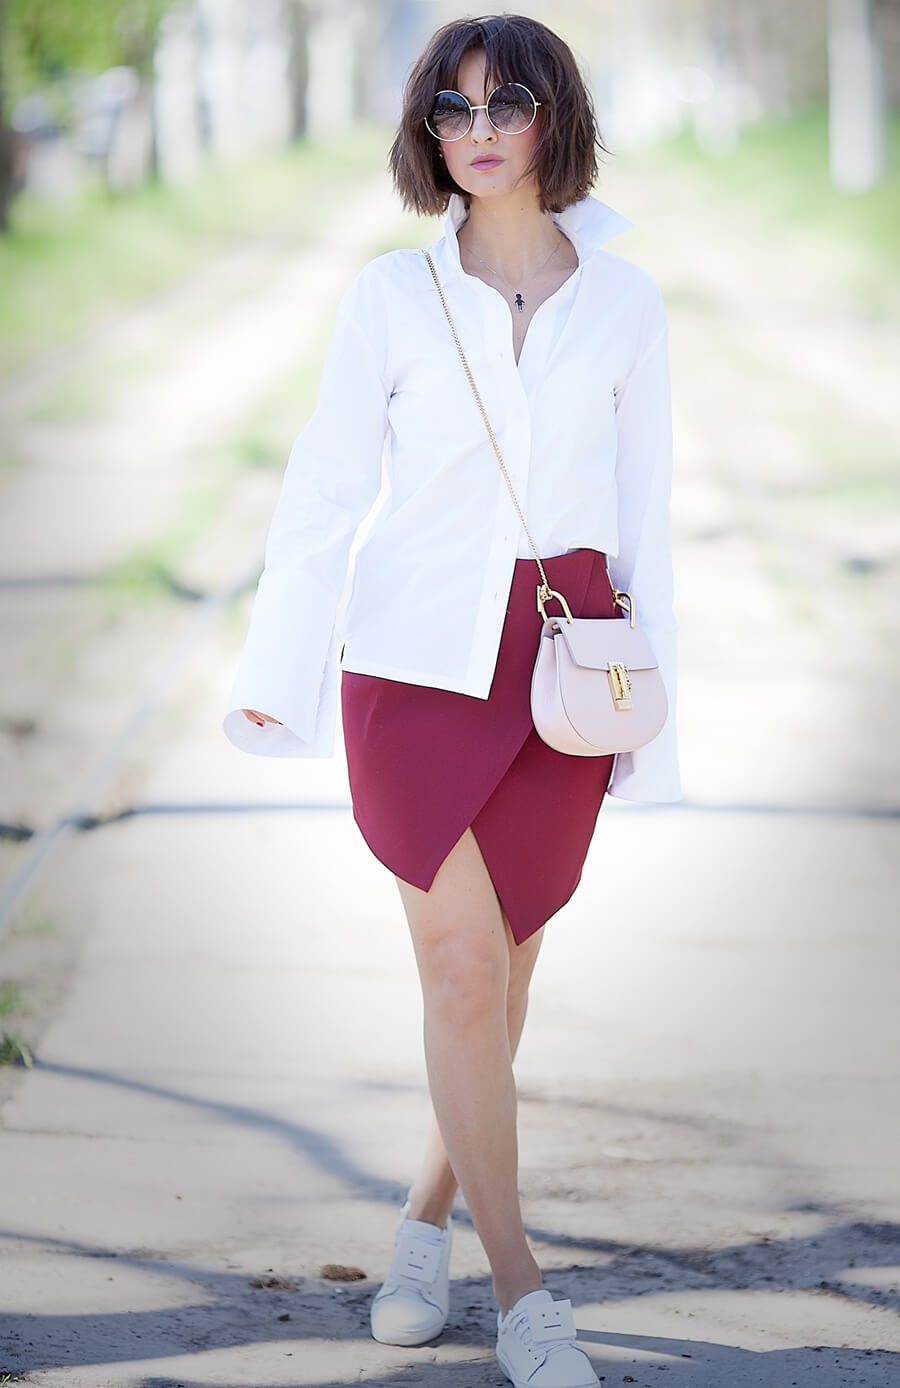 classic-white-shirt-outfit-with-mini-skirt